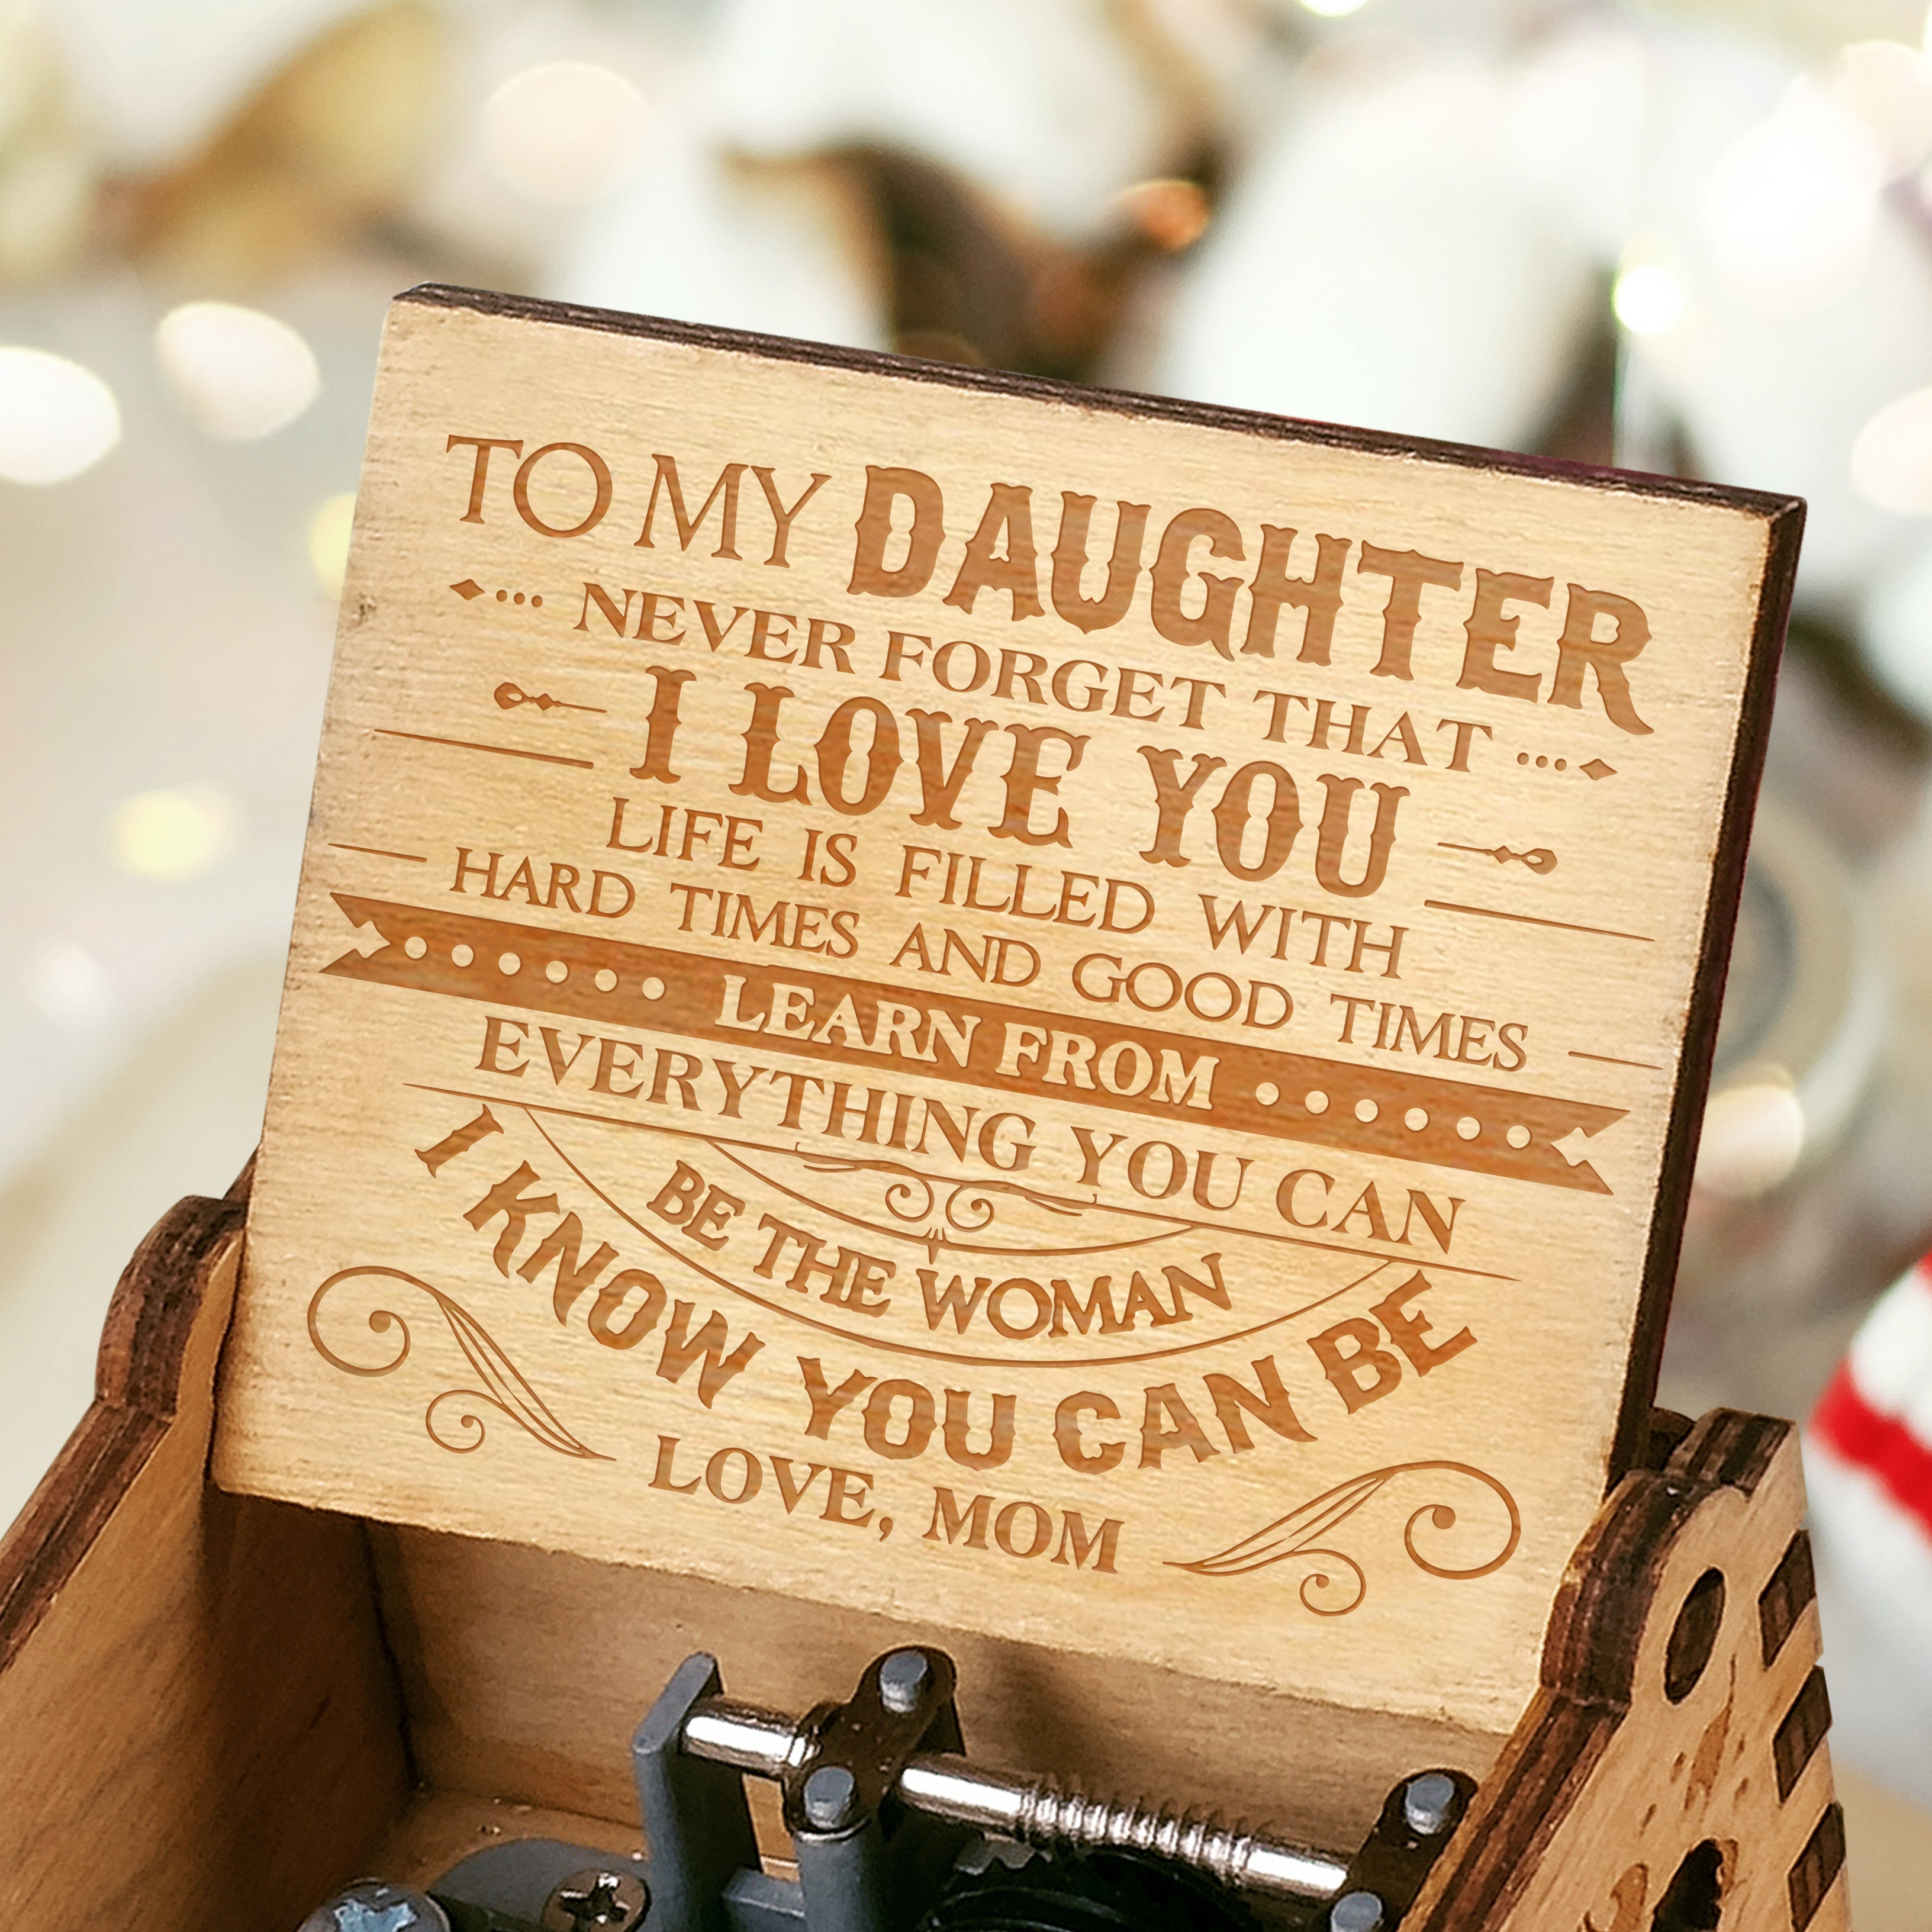 Express Delivery - Mom To Daughter - Hard Times And Good Times - Engraved Music Box